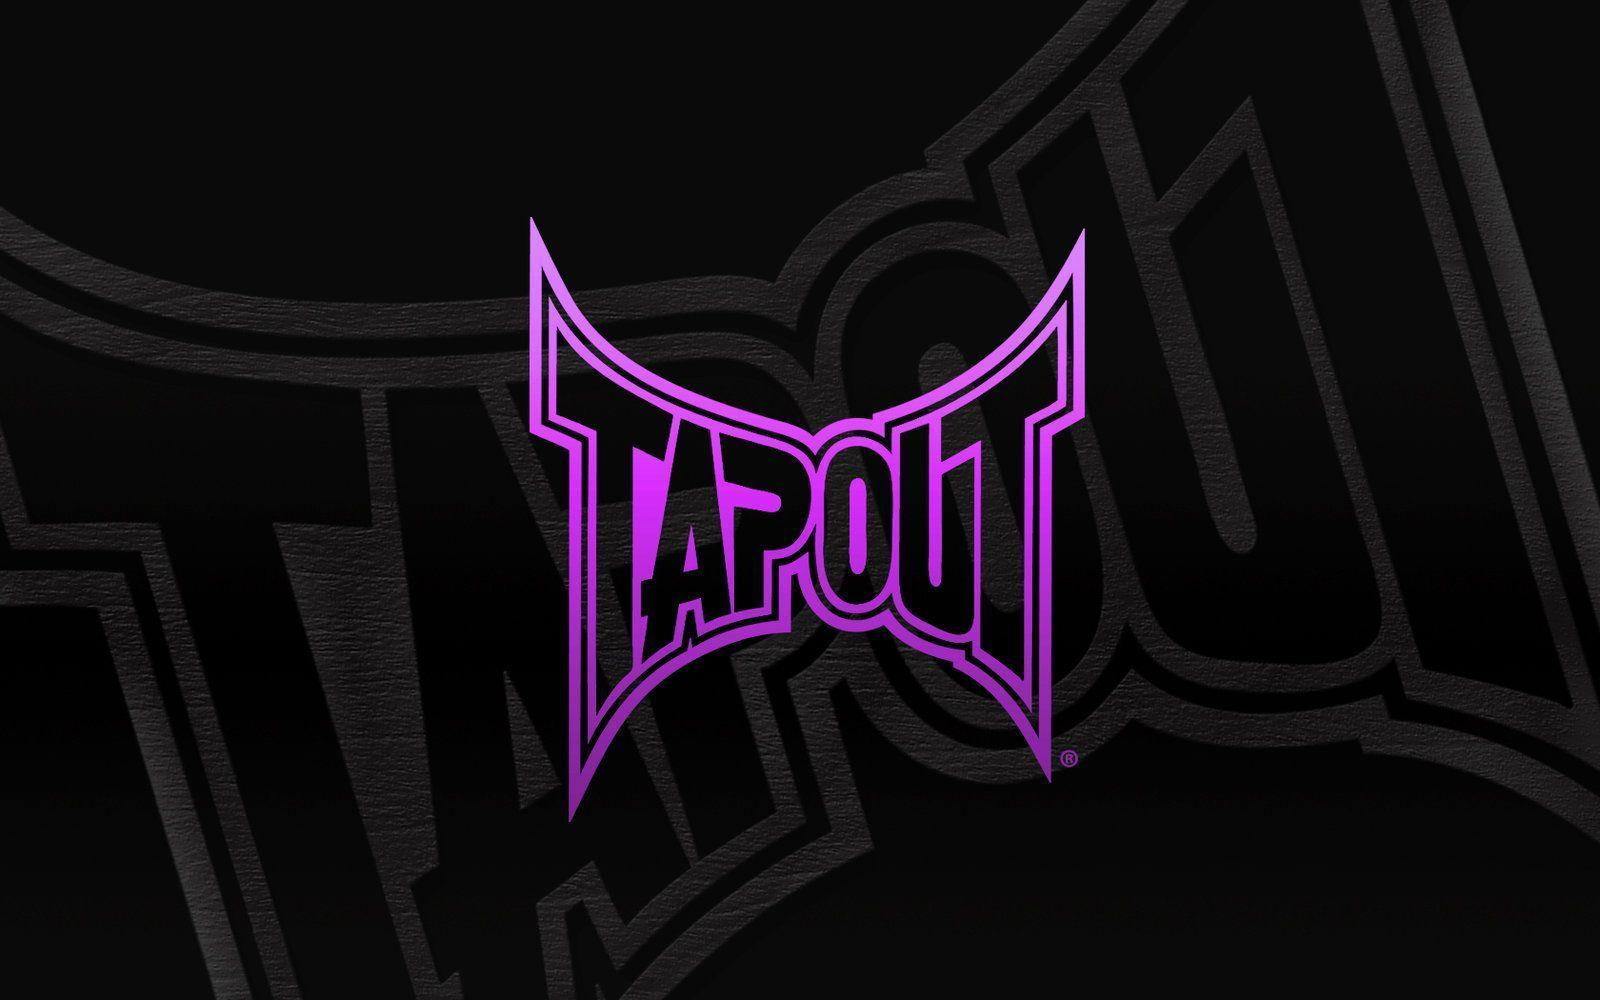 tapout wallpaper for facebook - photo #3